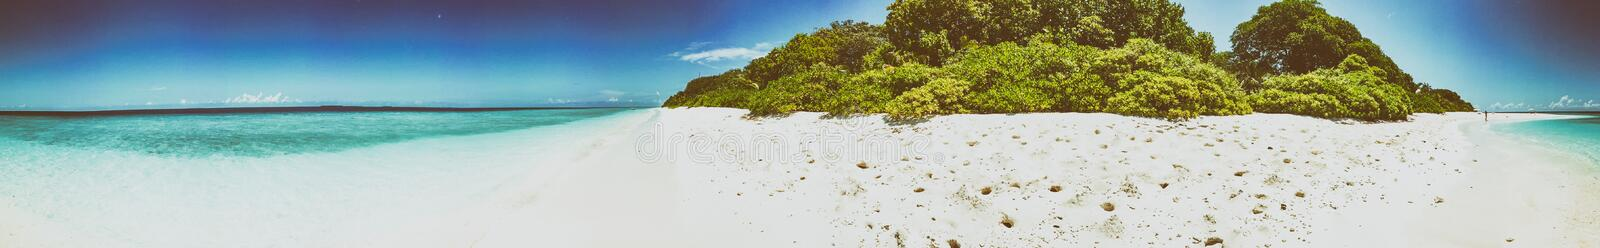 Panoramic view of Maldivian Sea and Island.  stock image